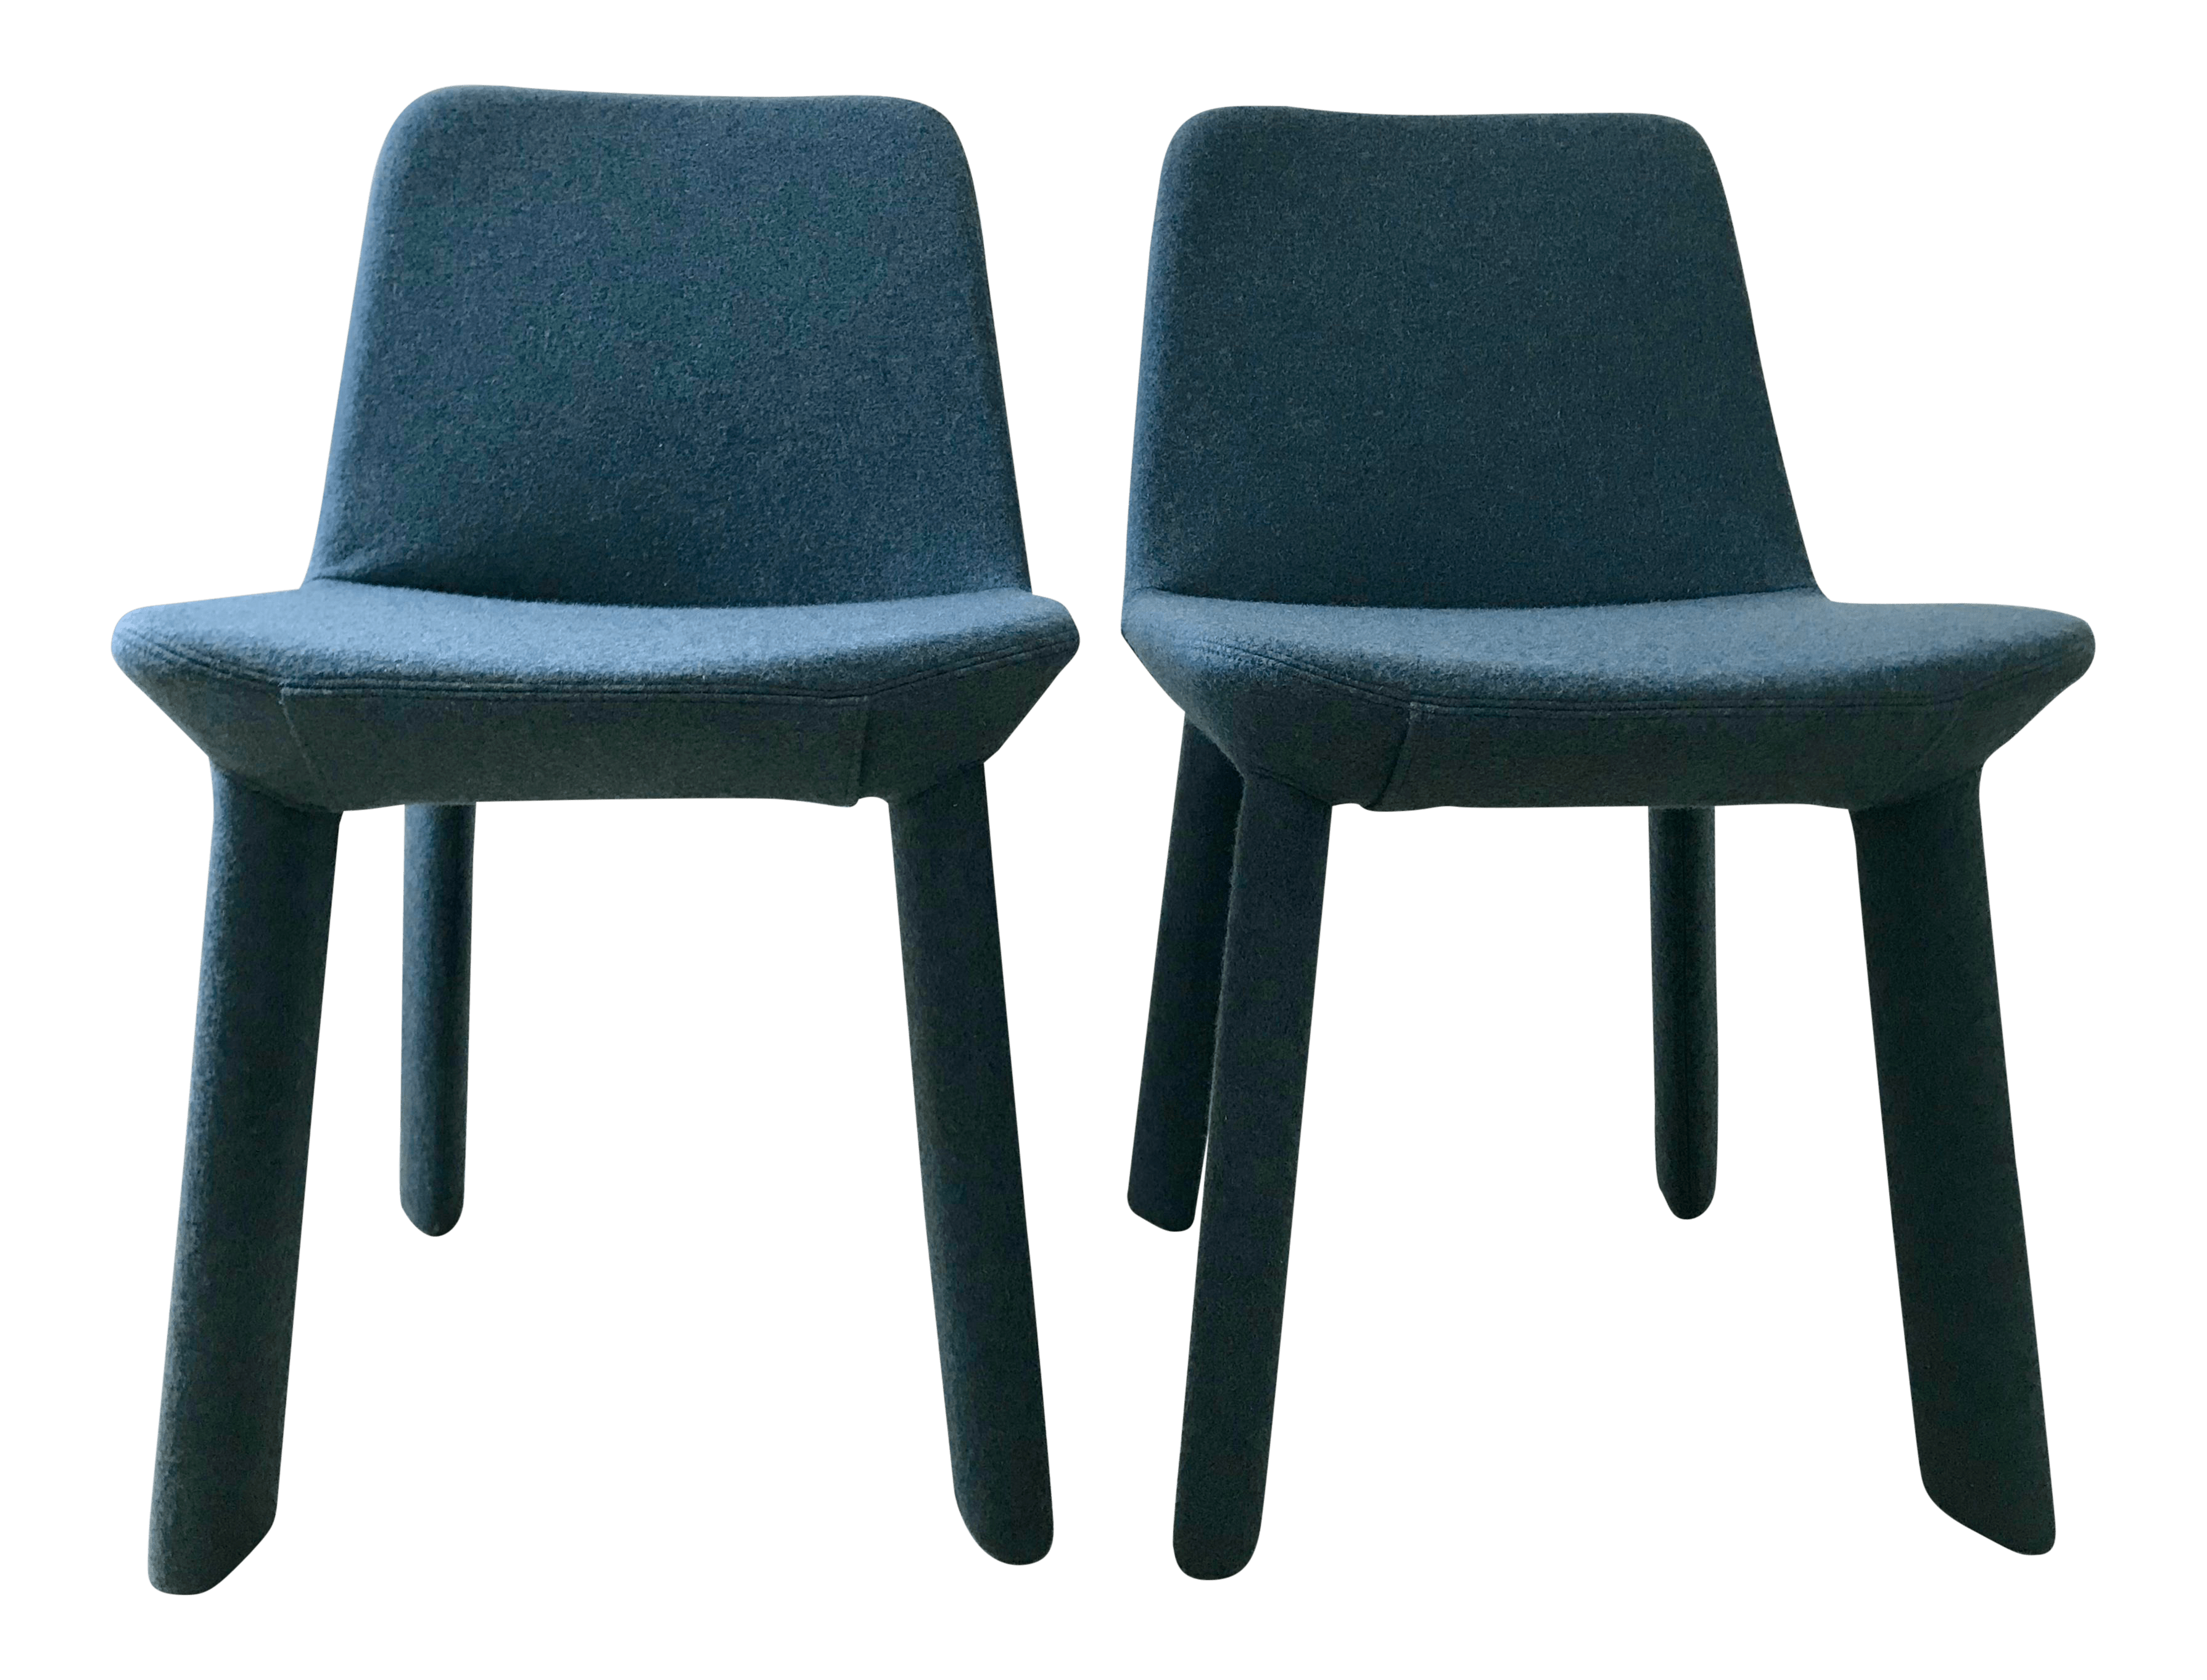 blue dot chairs hanging chair lahore blu marine neat dining a pair chairish for sale